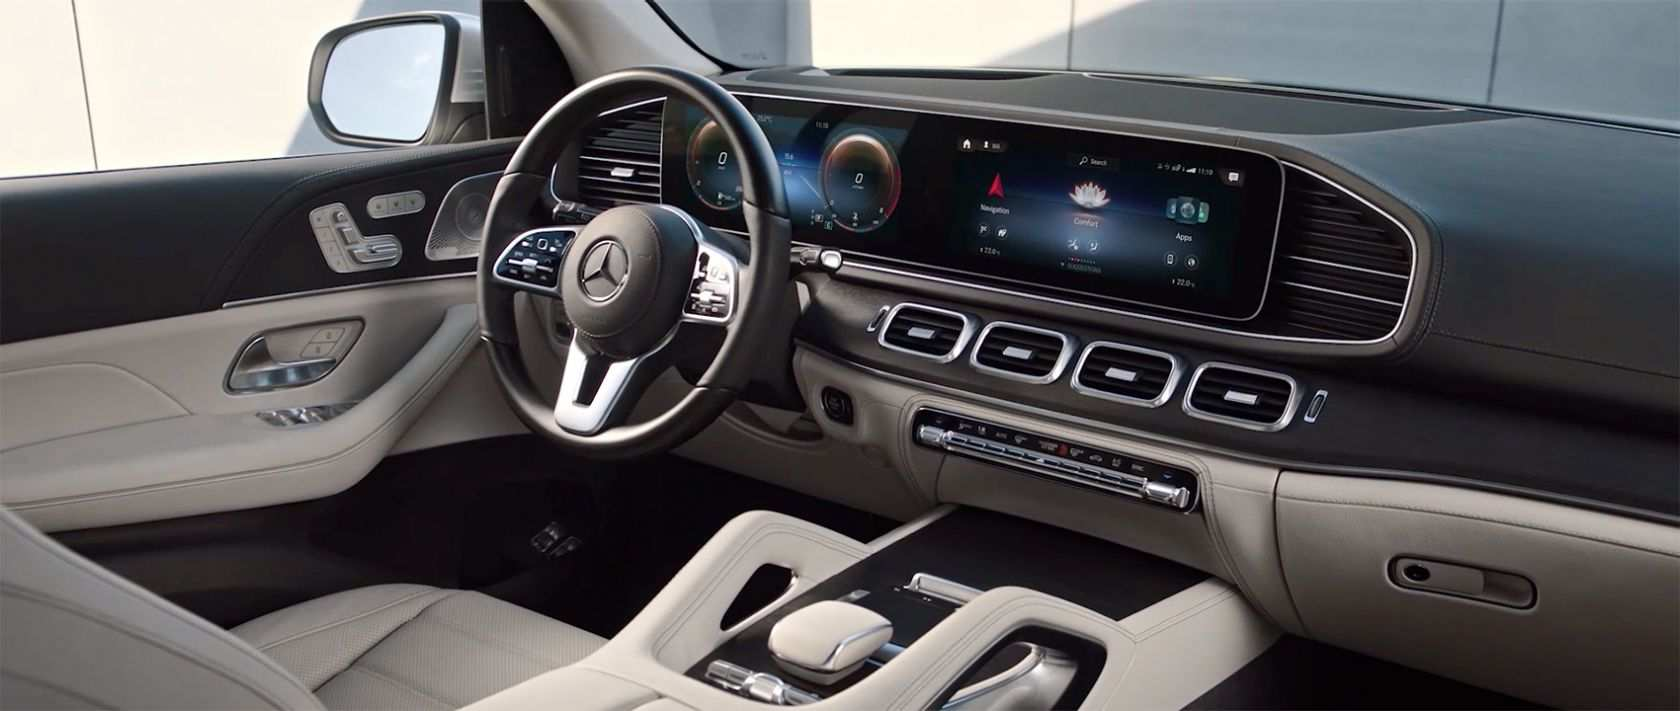 67 New Gls Mercedes 2019 Images